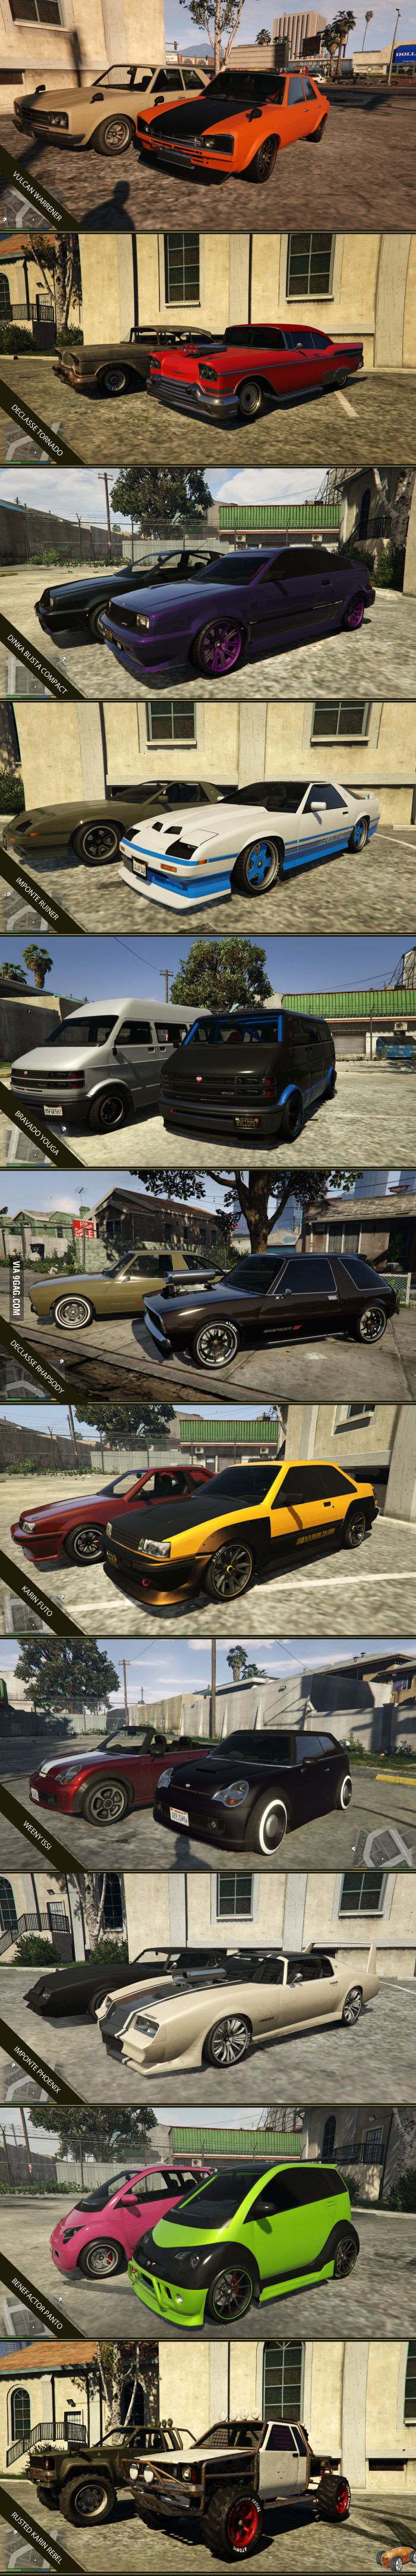 Google chrome theme gta v - These Gta V Cars Tend To Be Neglected By The Players I Gave Them Some